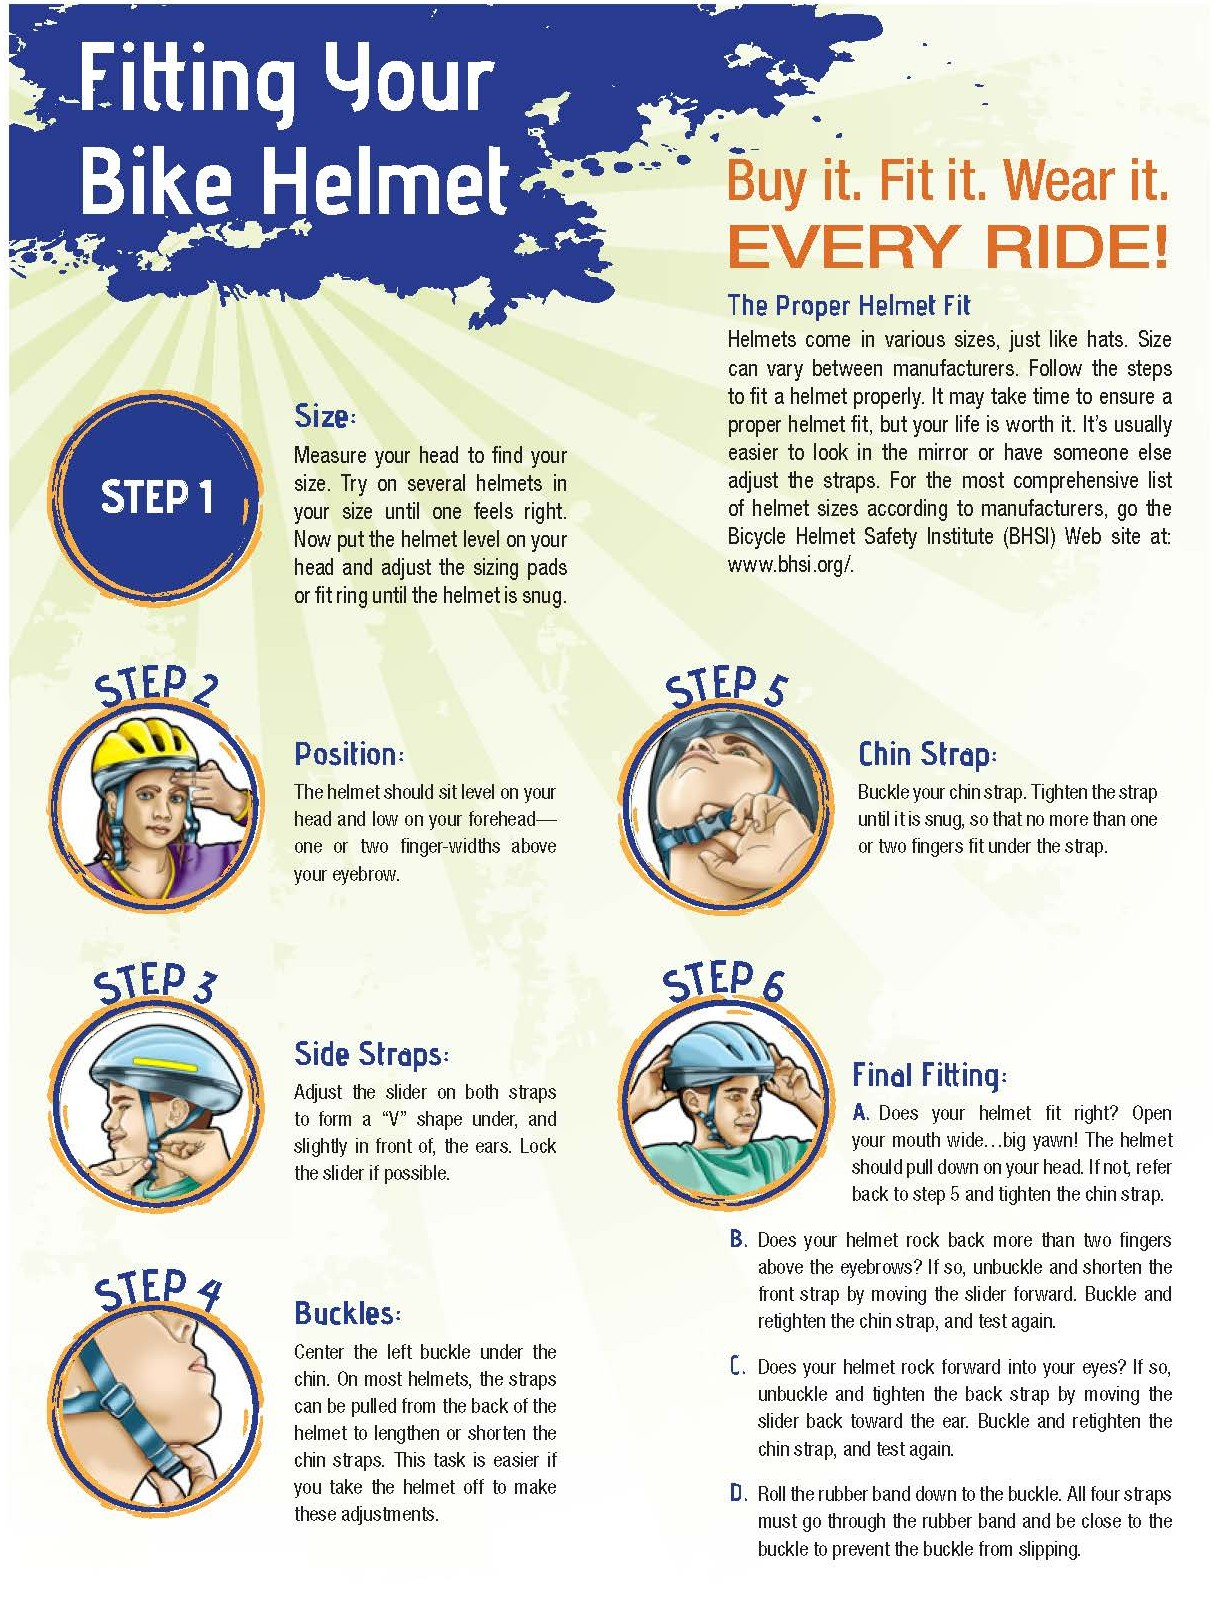 Fitting Your Bike Helmet page 1